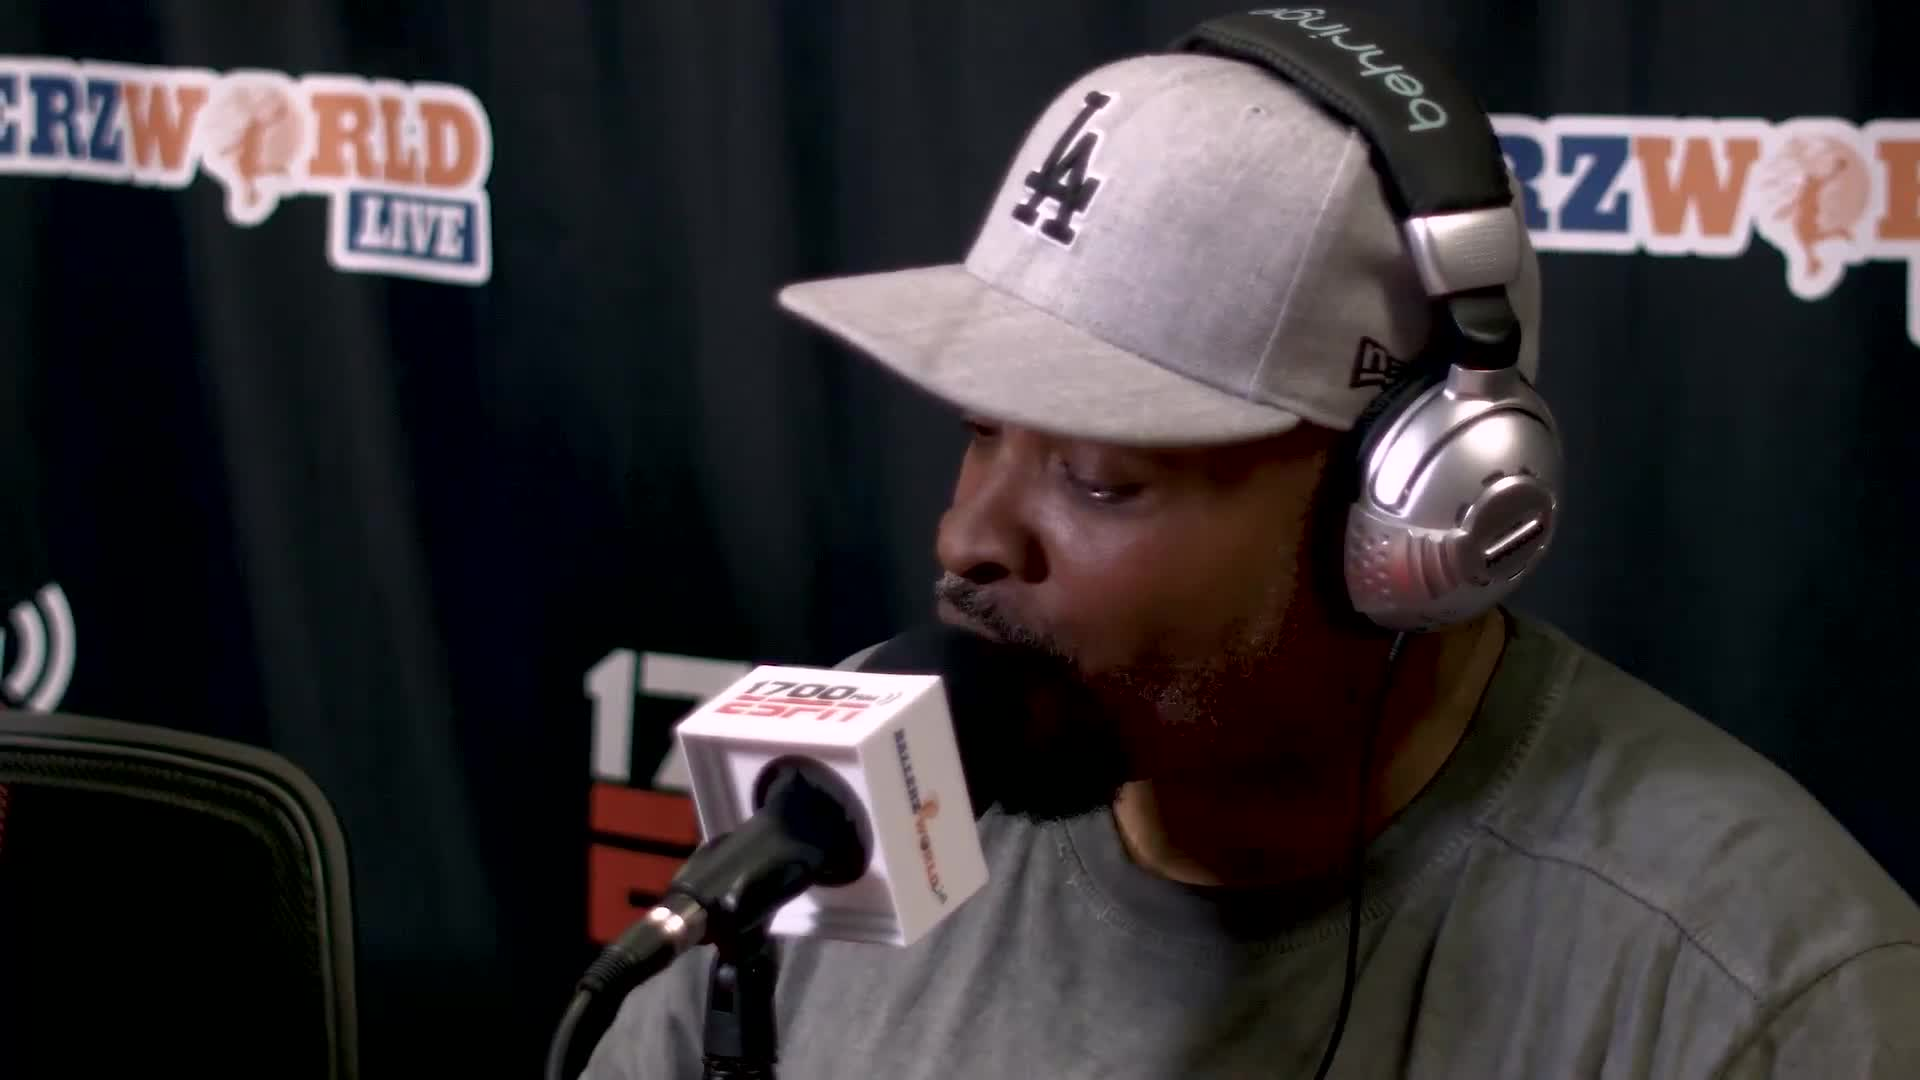 Speedy Talks About BBB and Lavar Ball